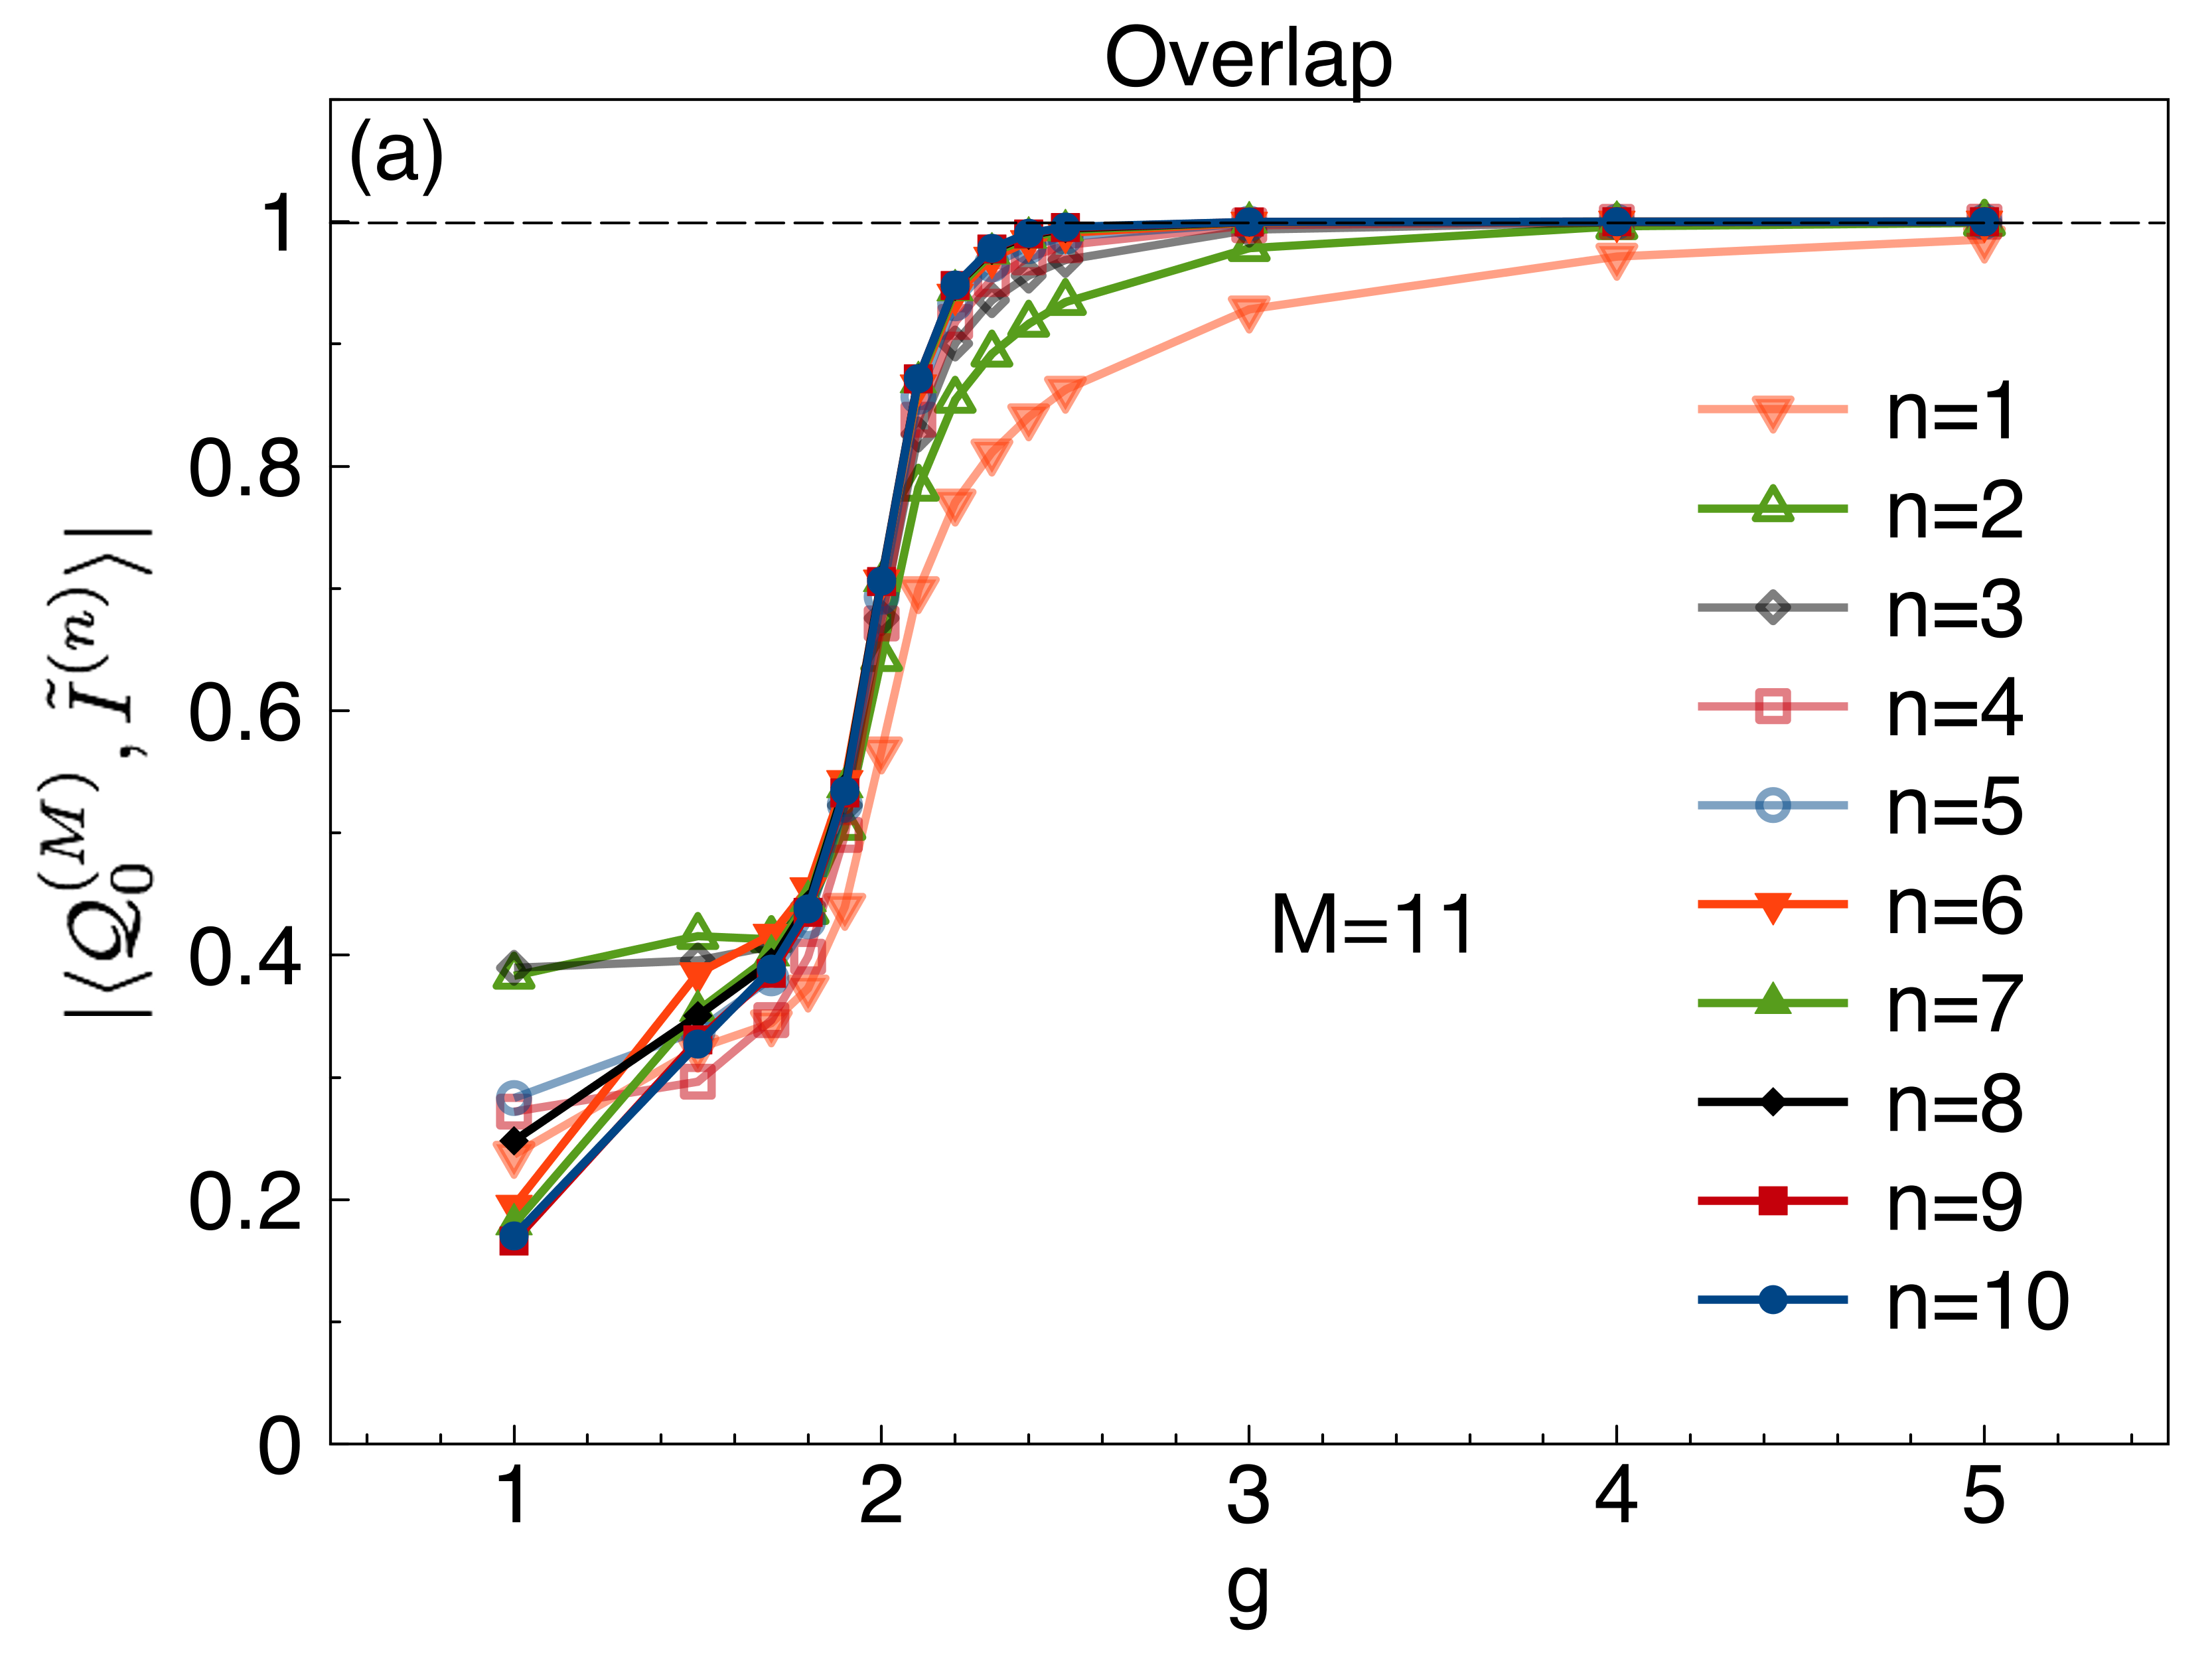 (color online) (a) The overlap between the full numerical optimization